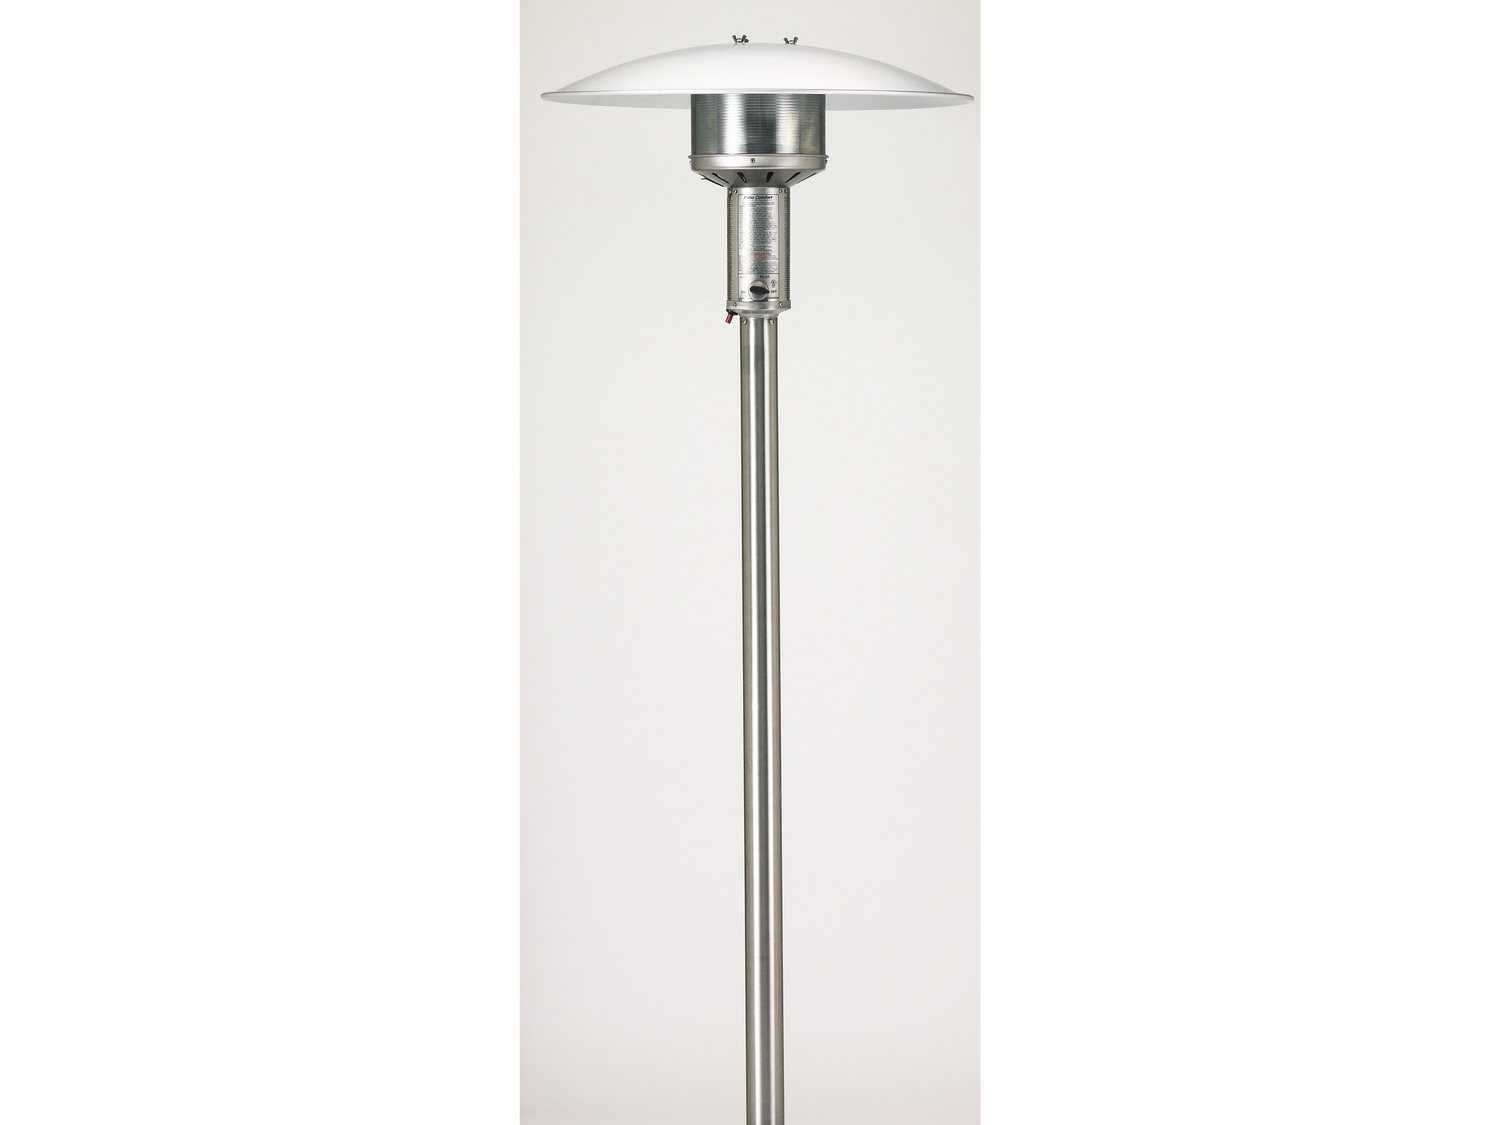 Patio Comfort Stainless Steel Permanent Natural Gas Heater